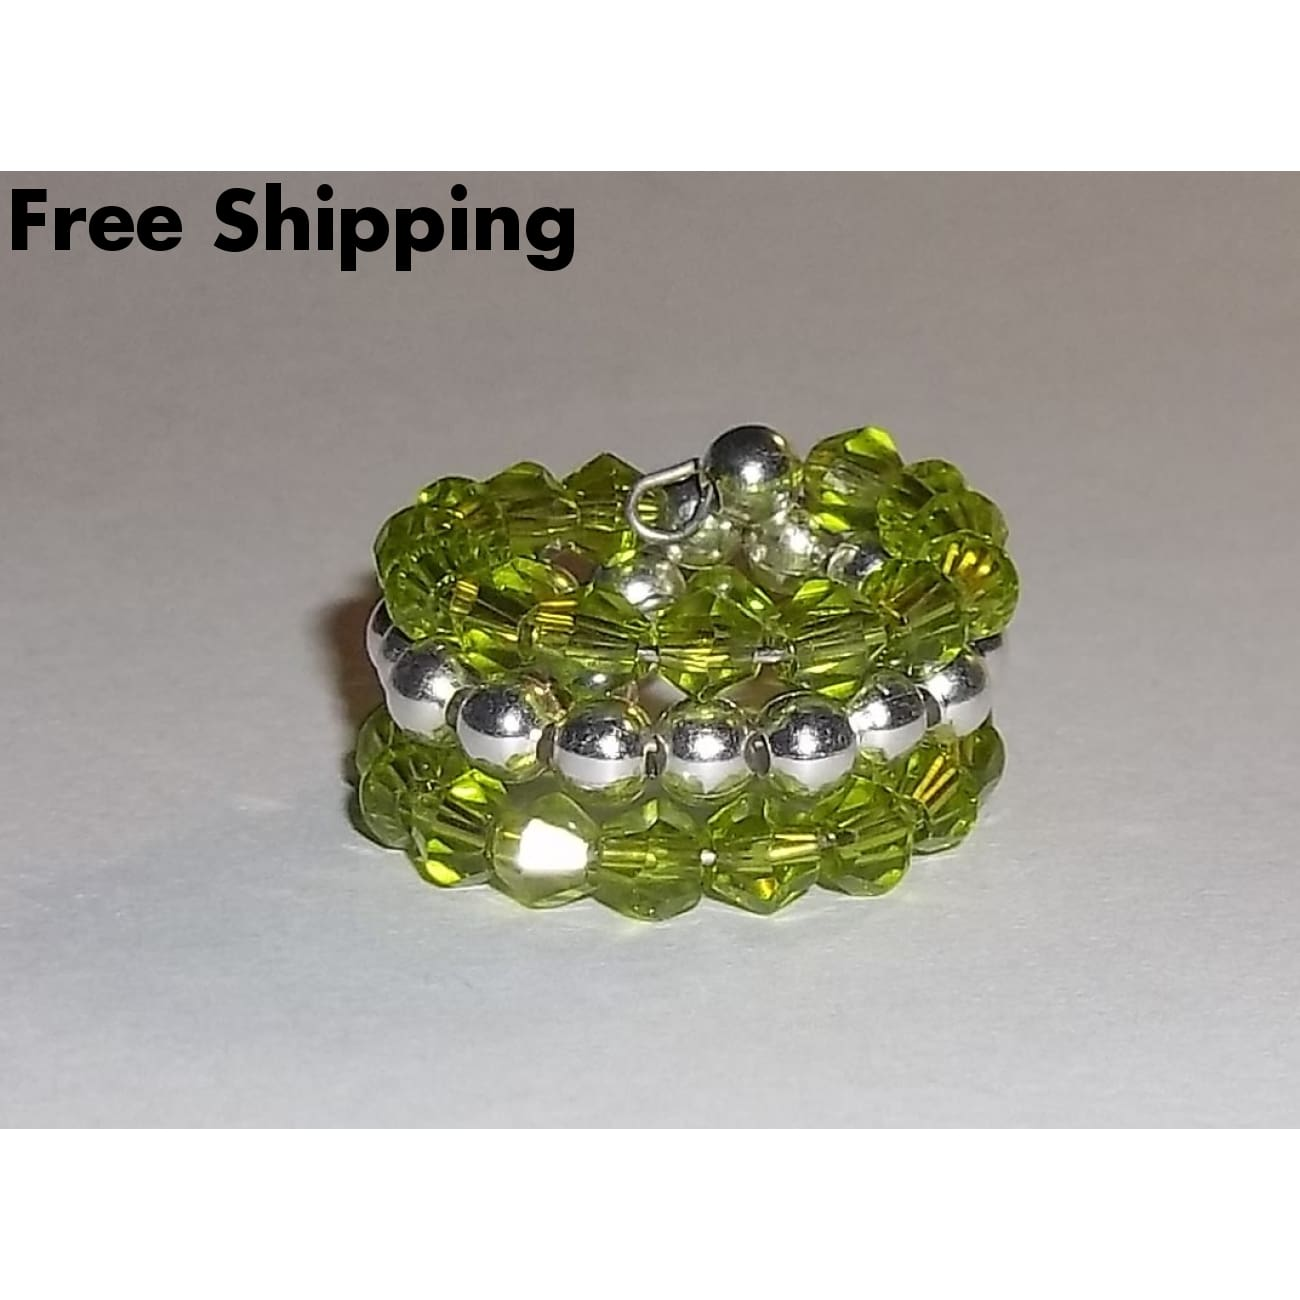 Spring Green Crystal & Tibetan Silver Beaded Artisan Crafted Wrap Ring Sz5 - Rings